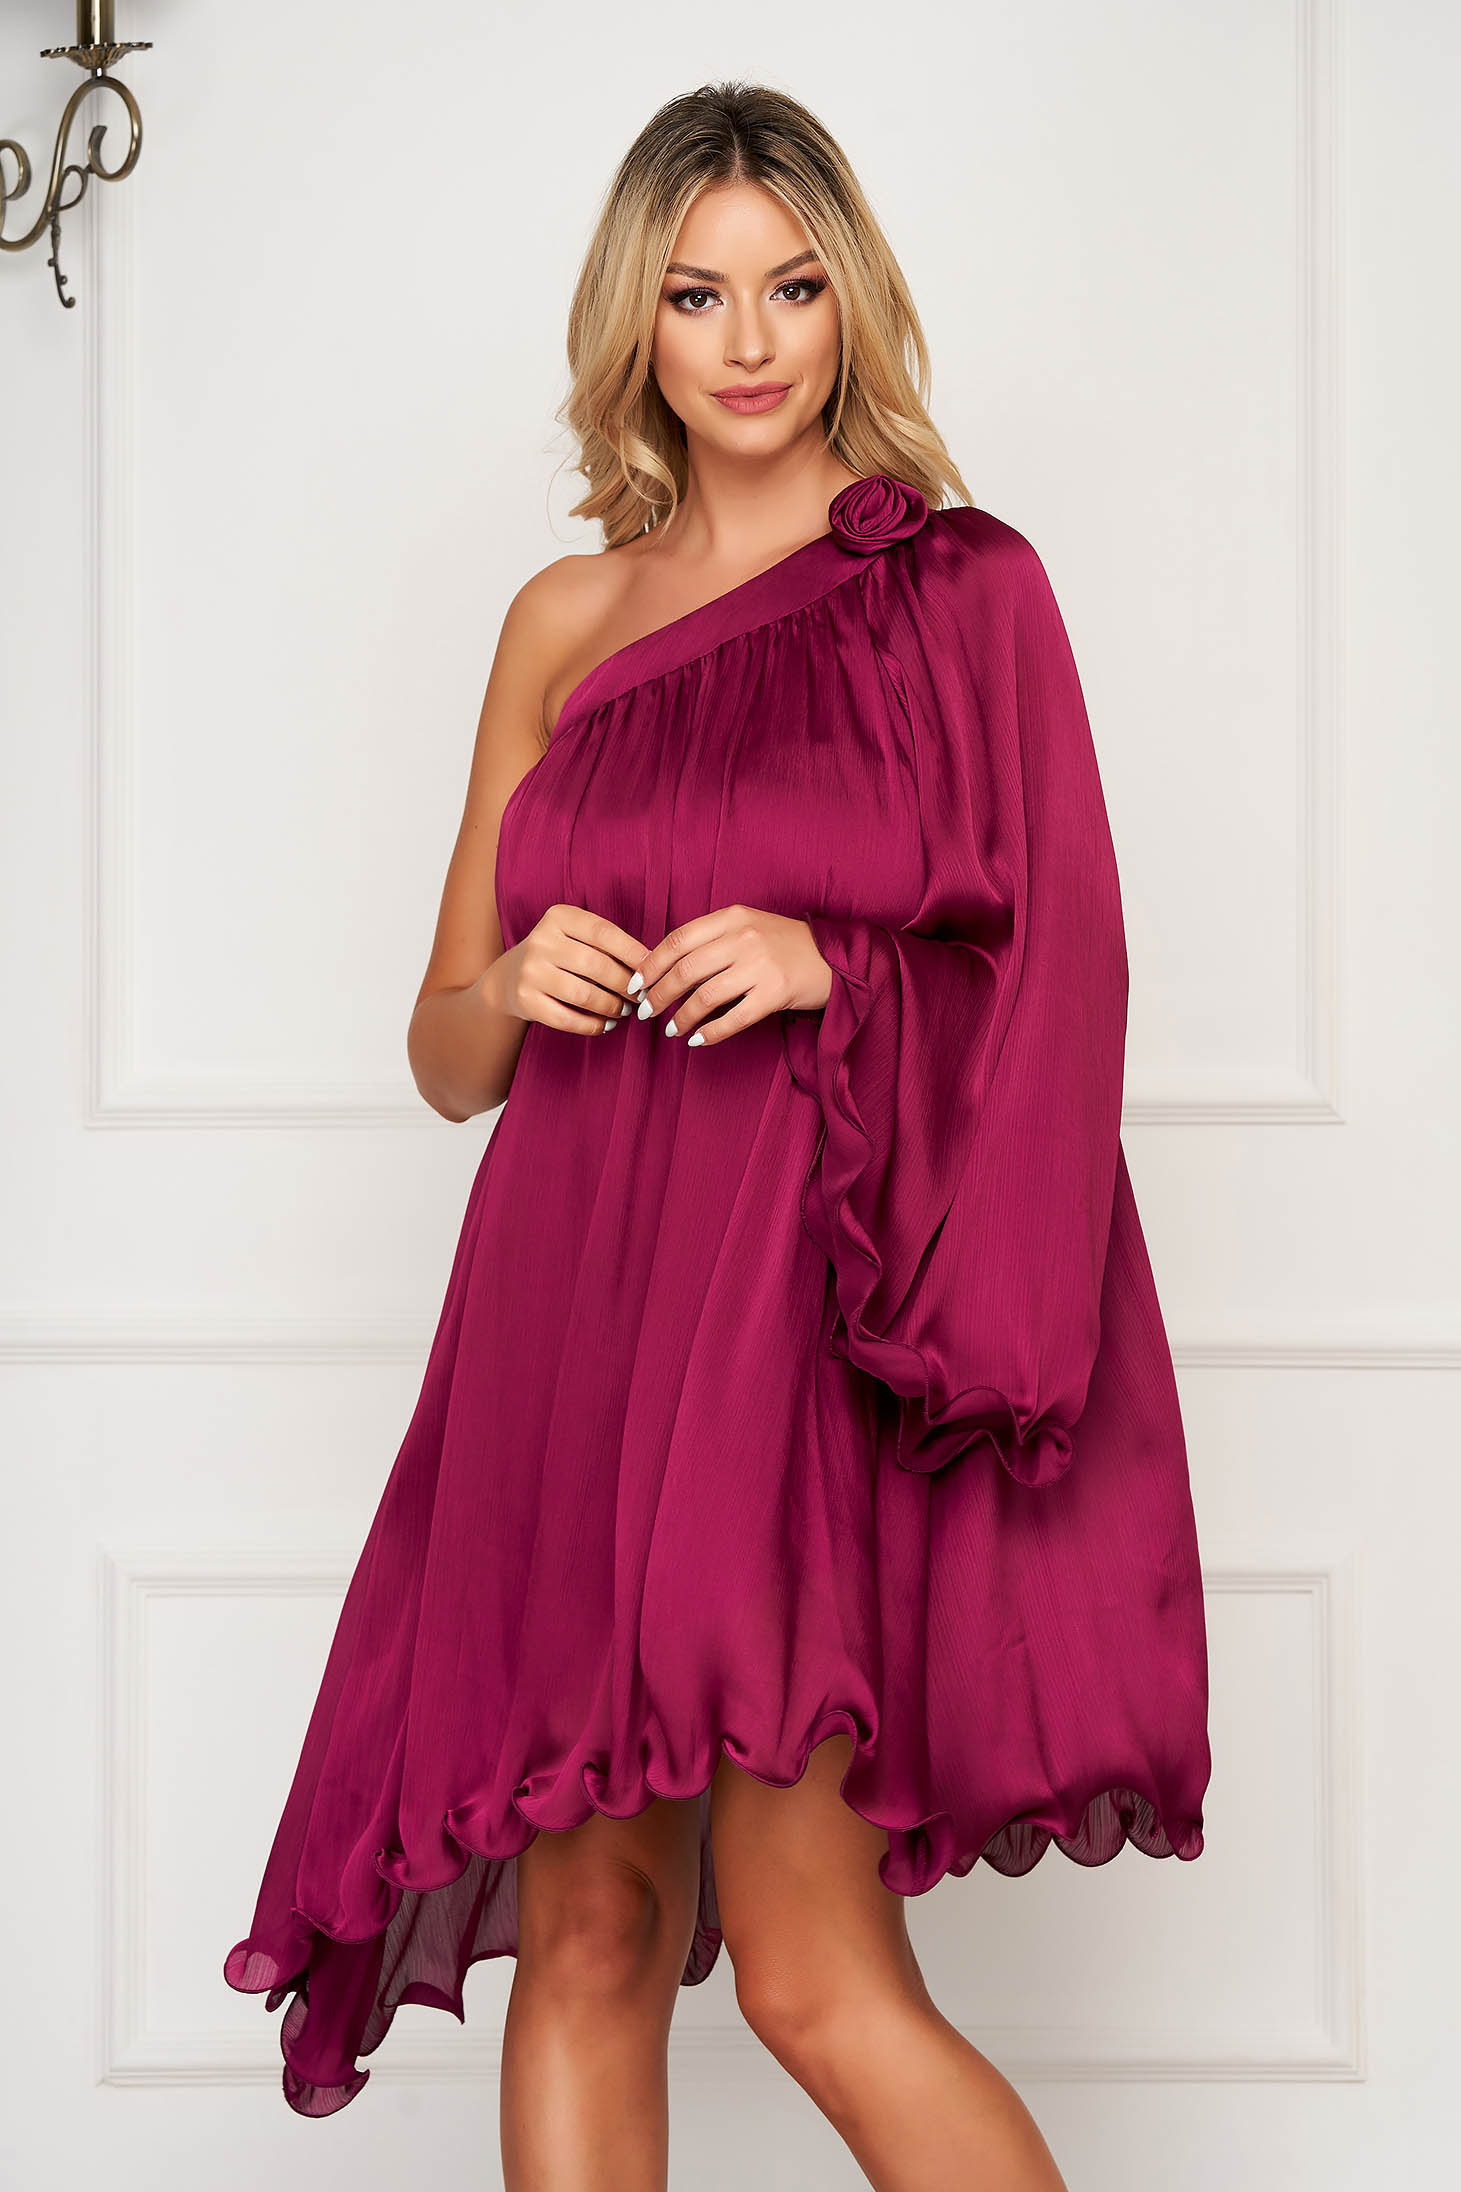 Dress fuchsia occasional asymmetrical flared from satin fabric texture